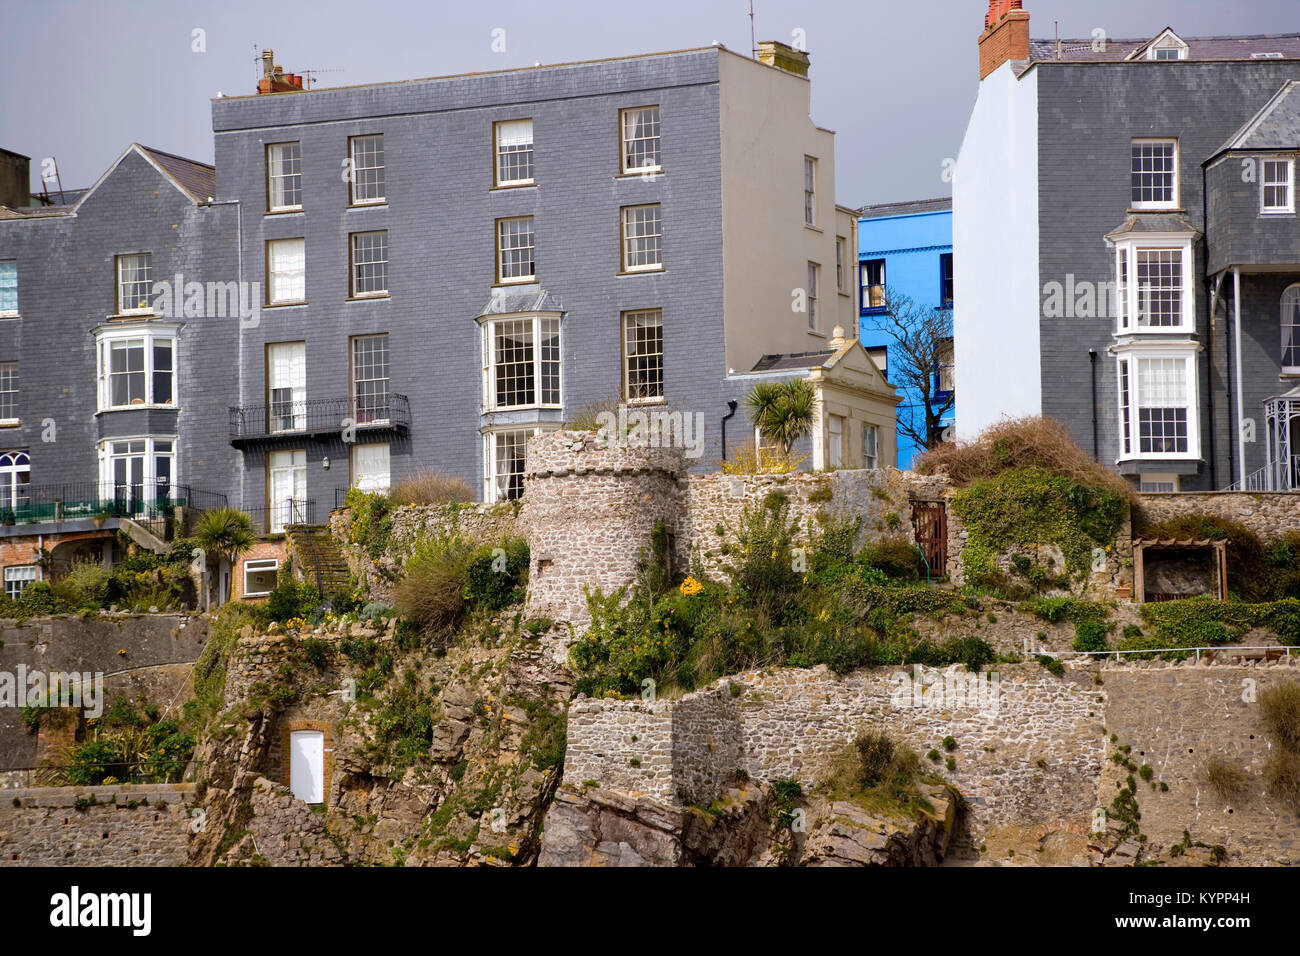 Immagini Case Grigie : Houses tenby cliffs immagini houses tenby cliffs fotos stock alamy